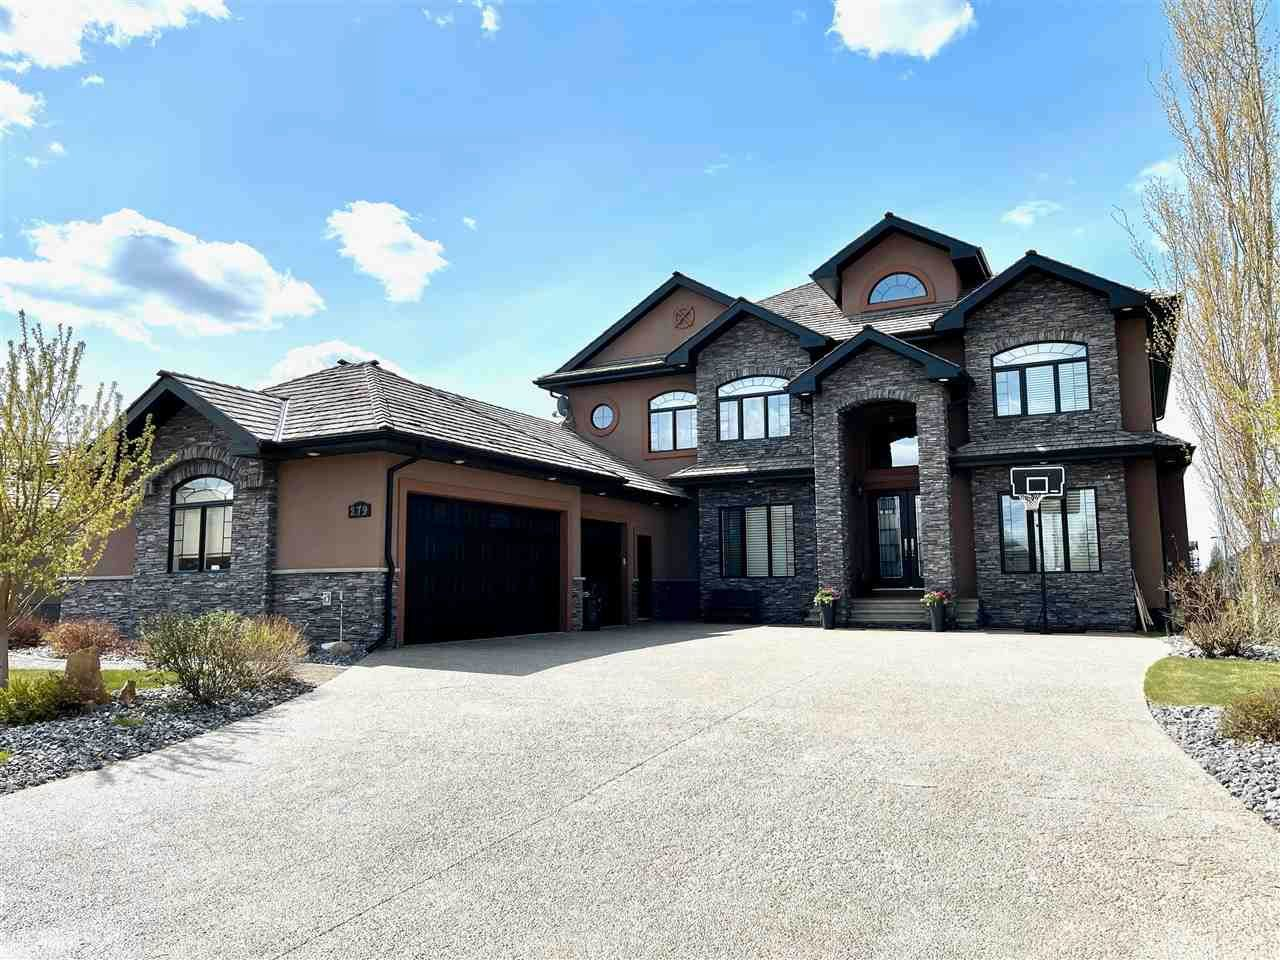 Main Photo: 279 52327 RGE RD 233: Rural Strathcona County House for sale : MLS®# E4228818